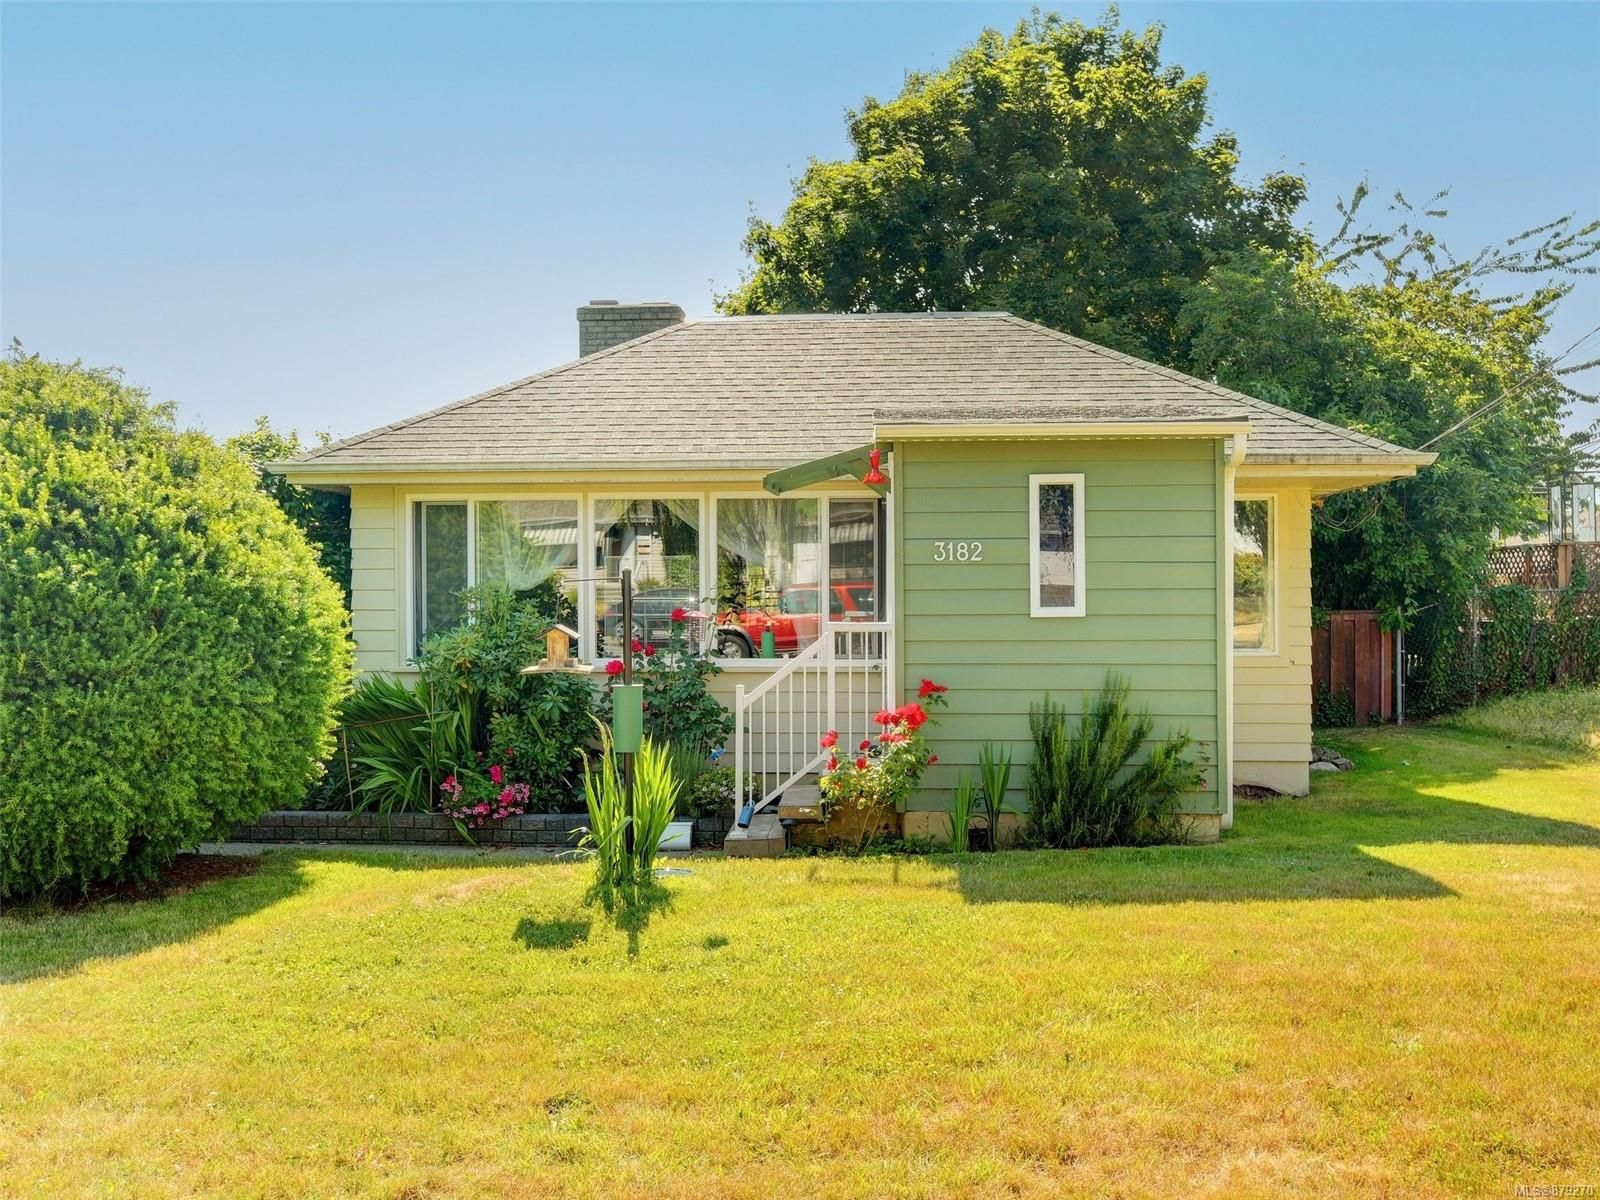 Main Photo: 3182 Rutledge St in Victoria: Vi Mayfair House for sale : MLS®# 879270